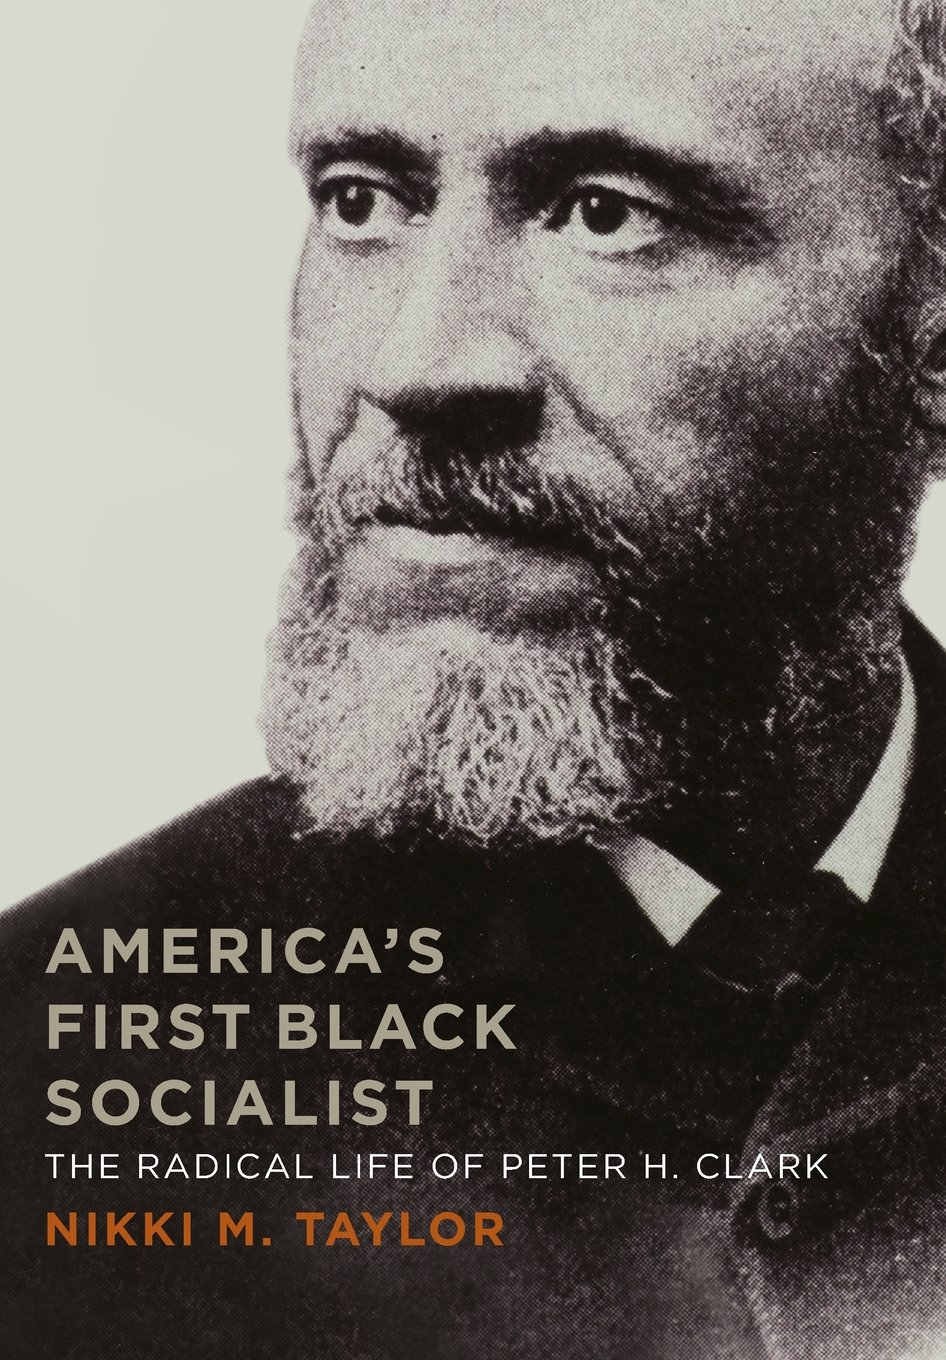 America's First Black Socialist: The Radical Life of Peter H. Clark